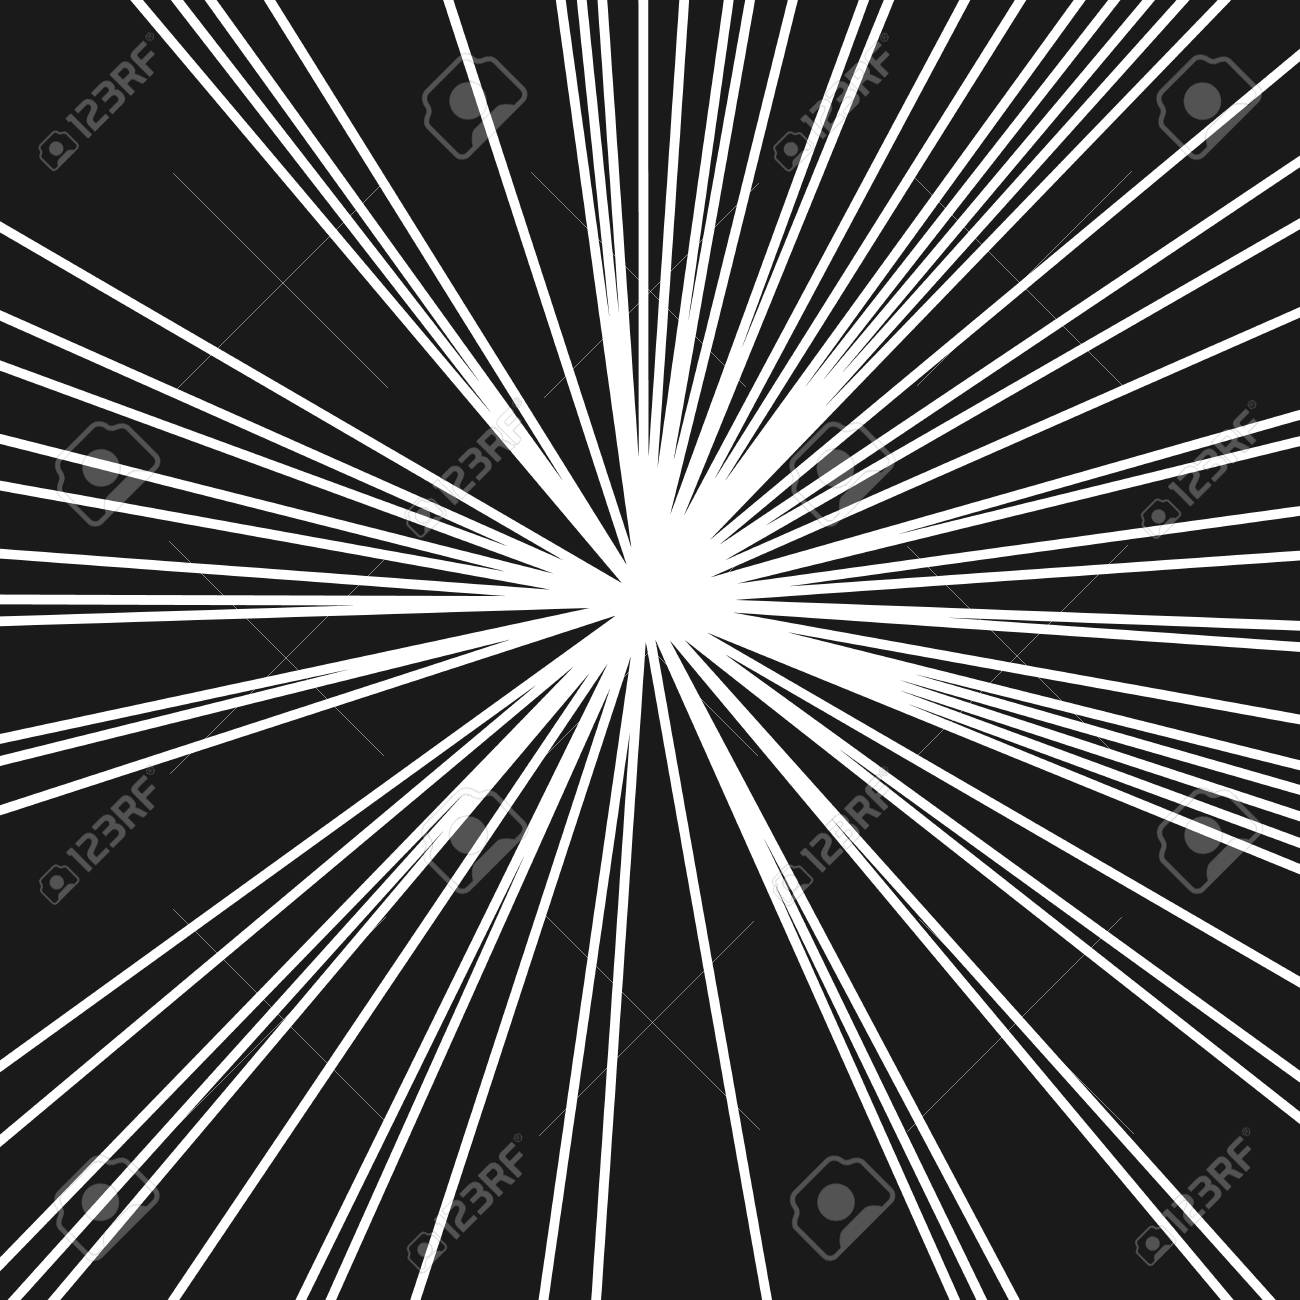 stripes image with light beams and rays radial lines background